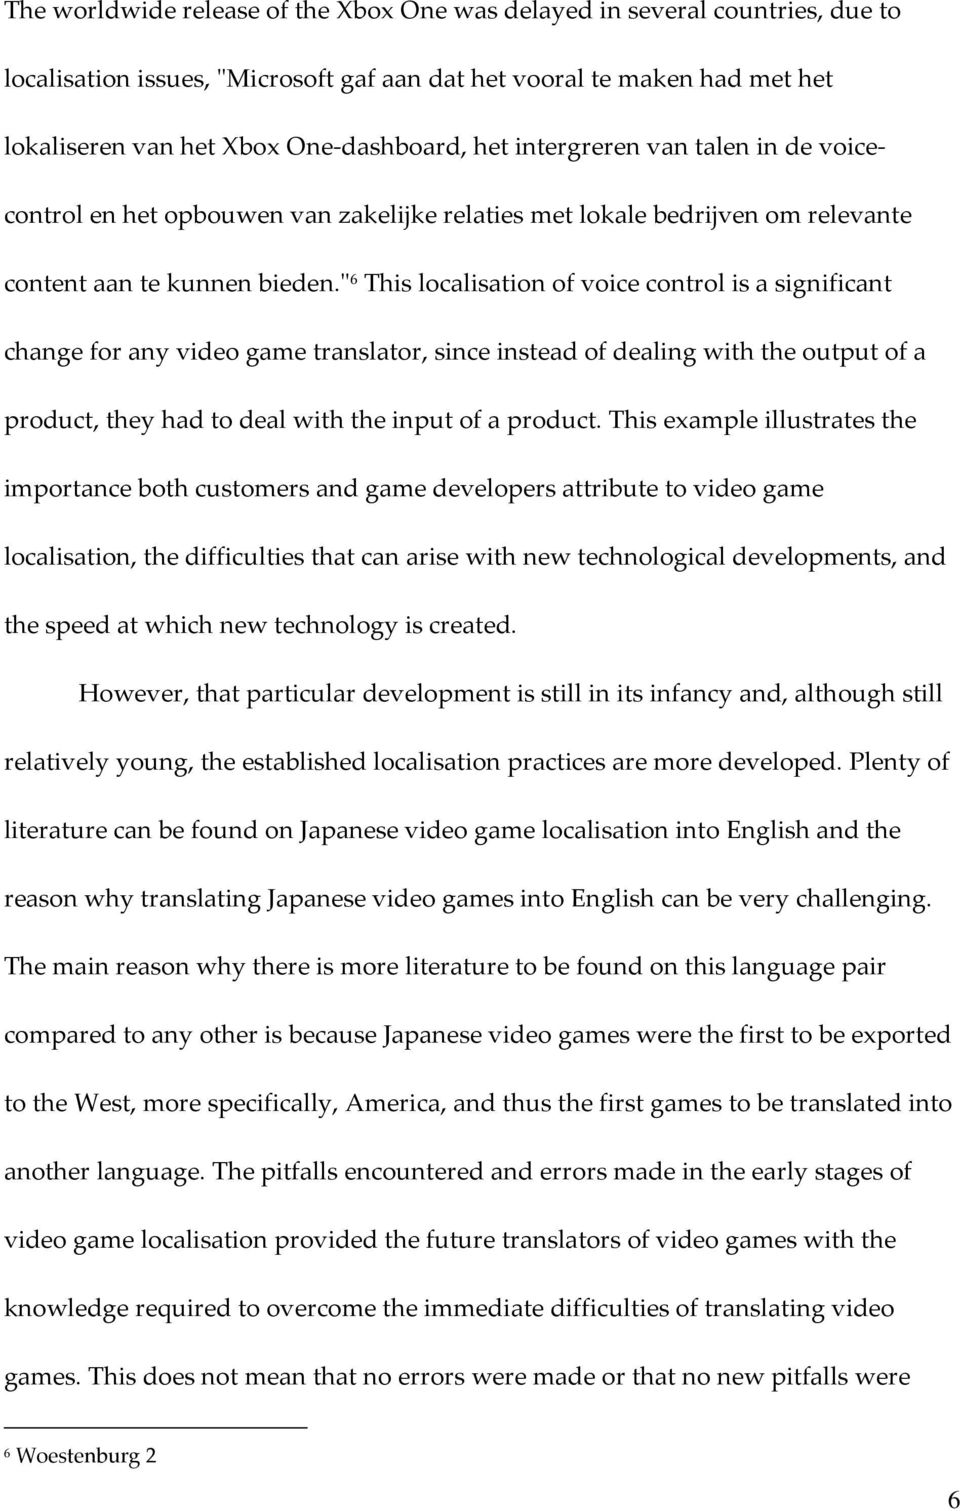 """ 6 This localisation of voice control is a significant change for any video game translator, since instead of dealing with the output of a product, they had to deal with the input of a product."